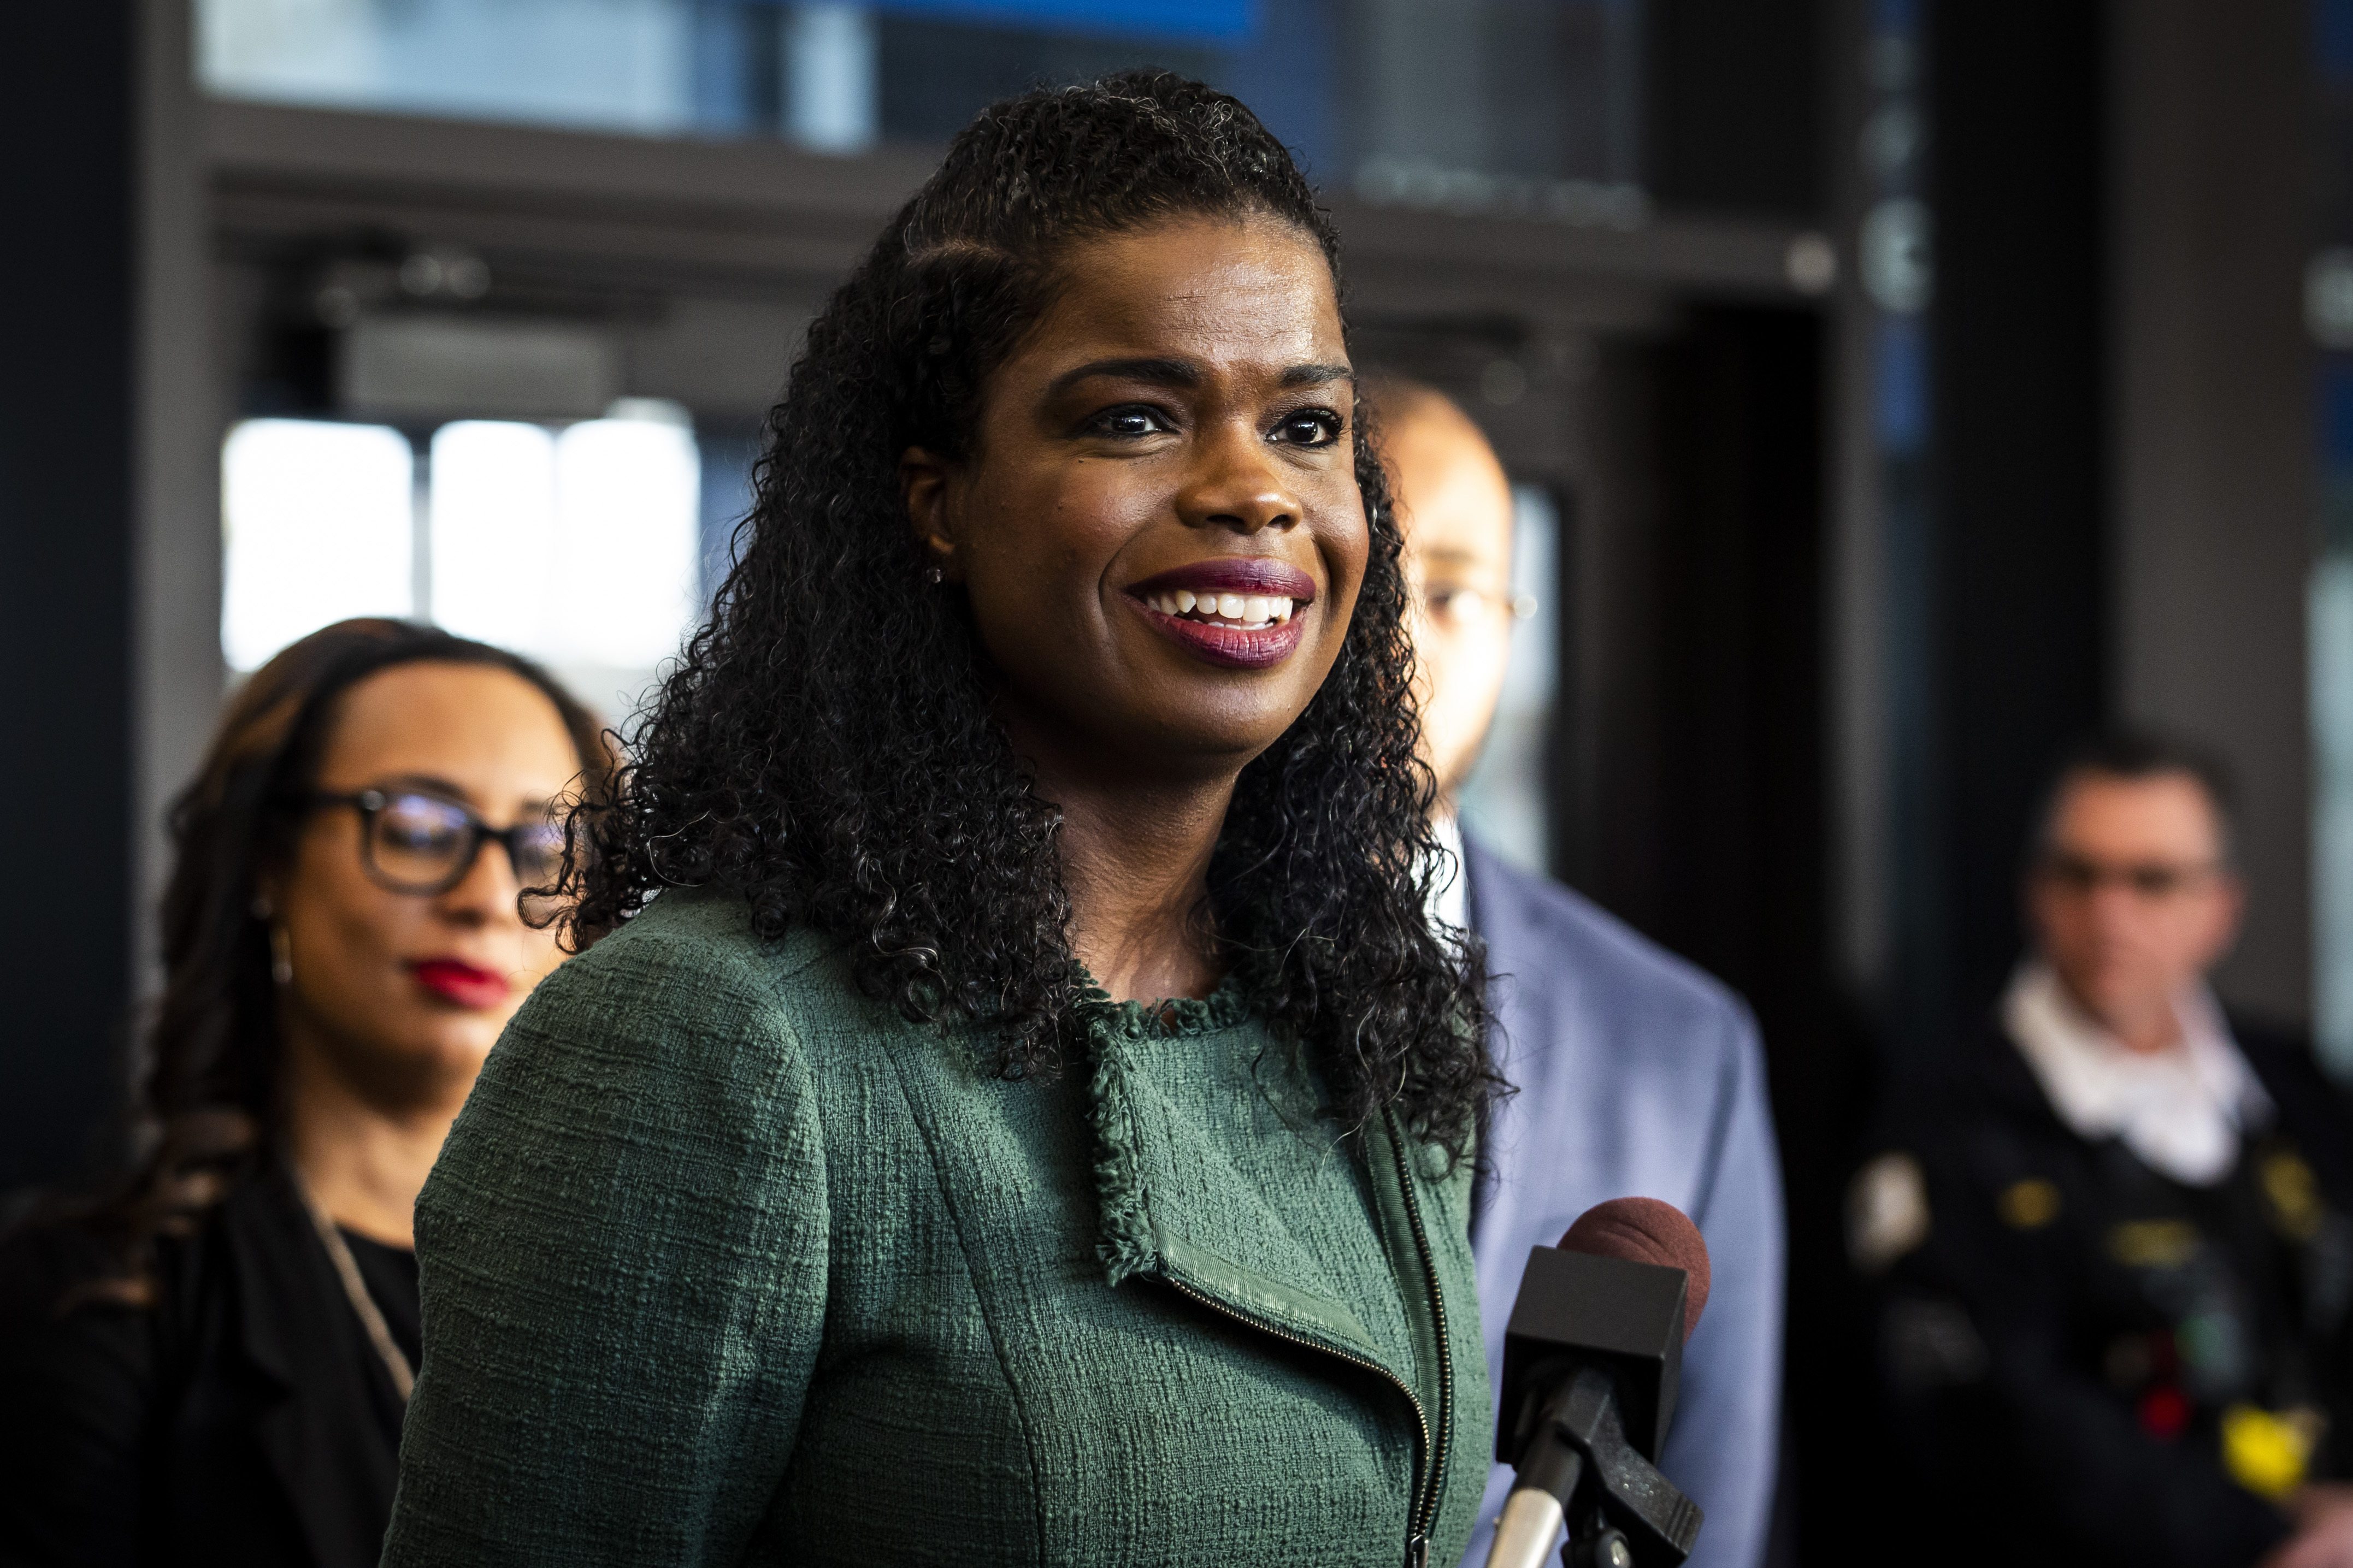 Cook County State's Attorney Kim Foxx speaks during a press conference after she filed motions to vacate more than 1,000 low-level cannabis convictions.